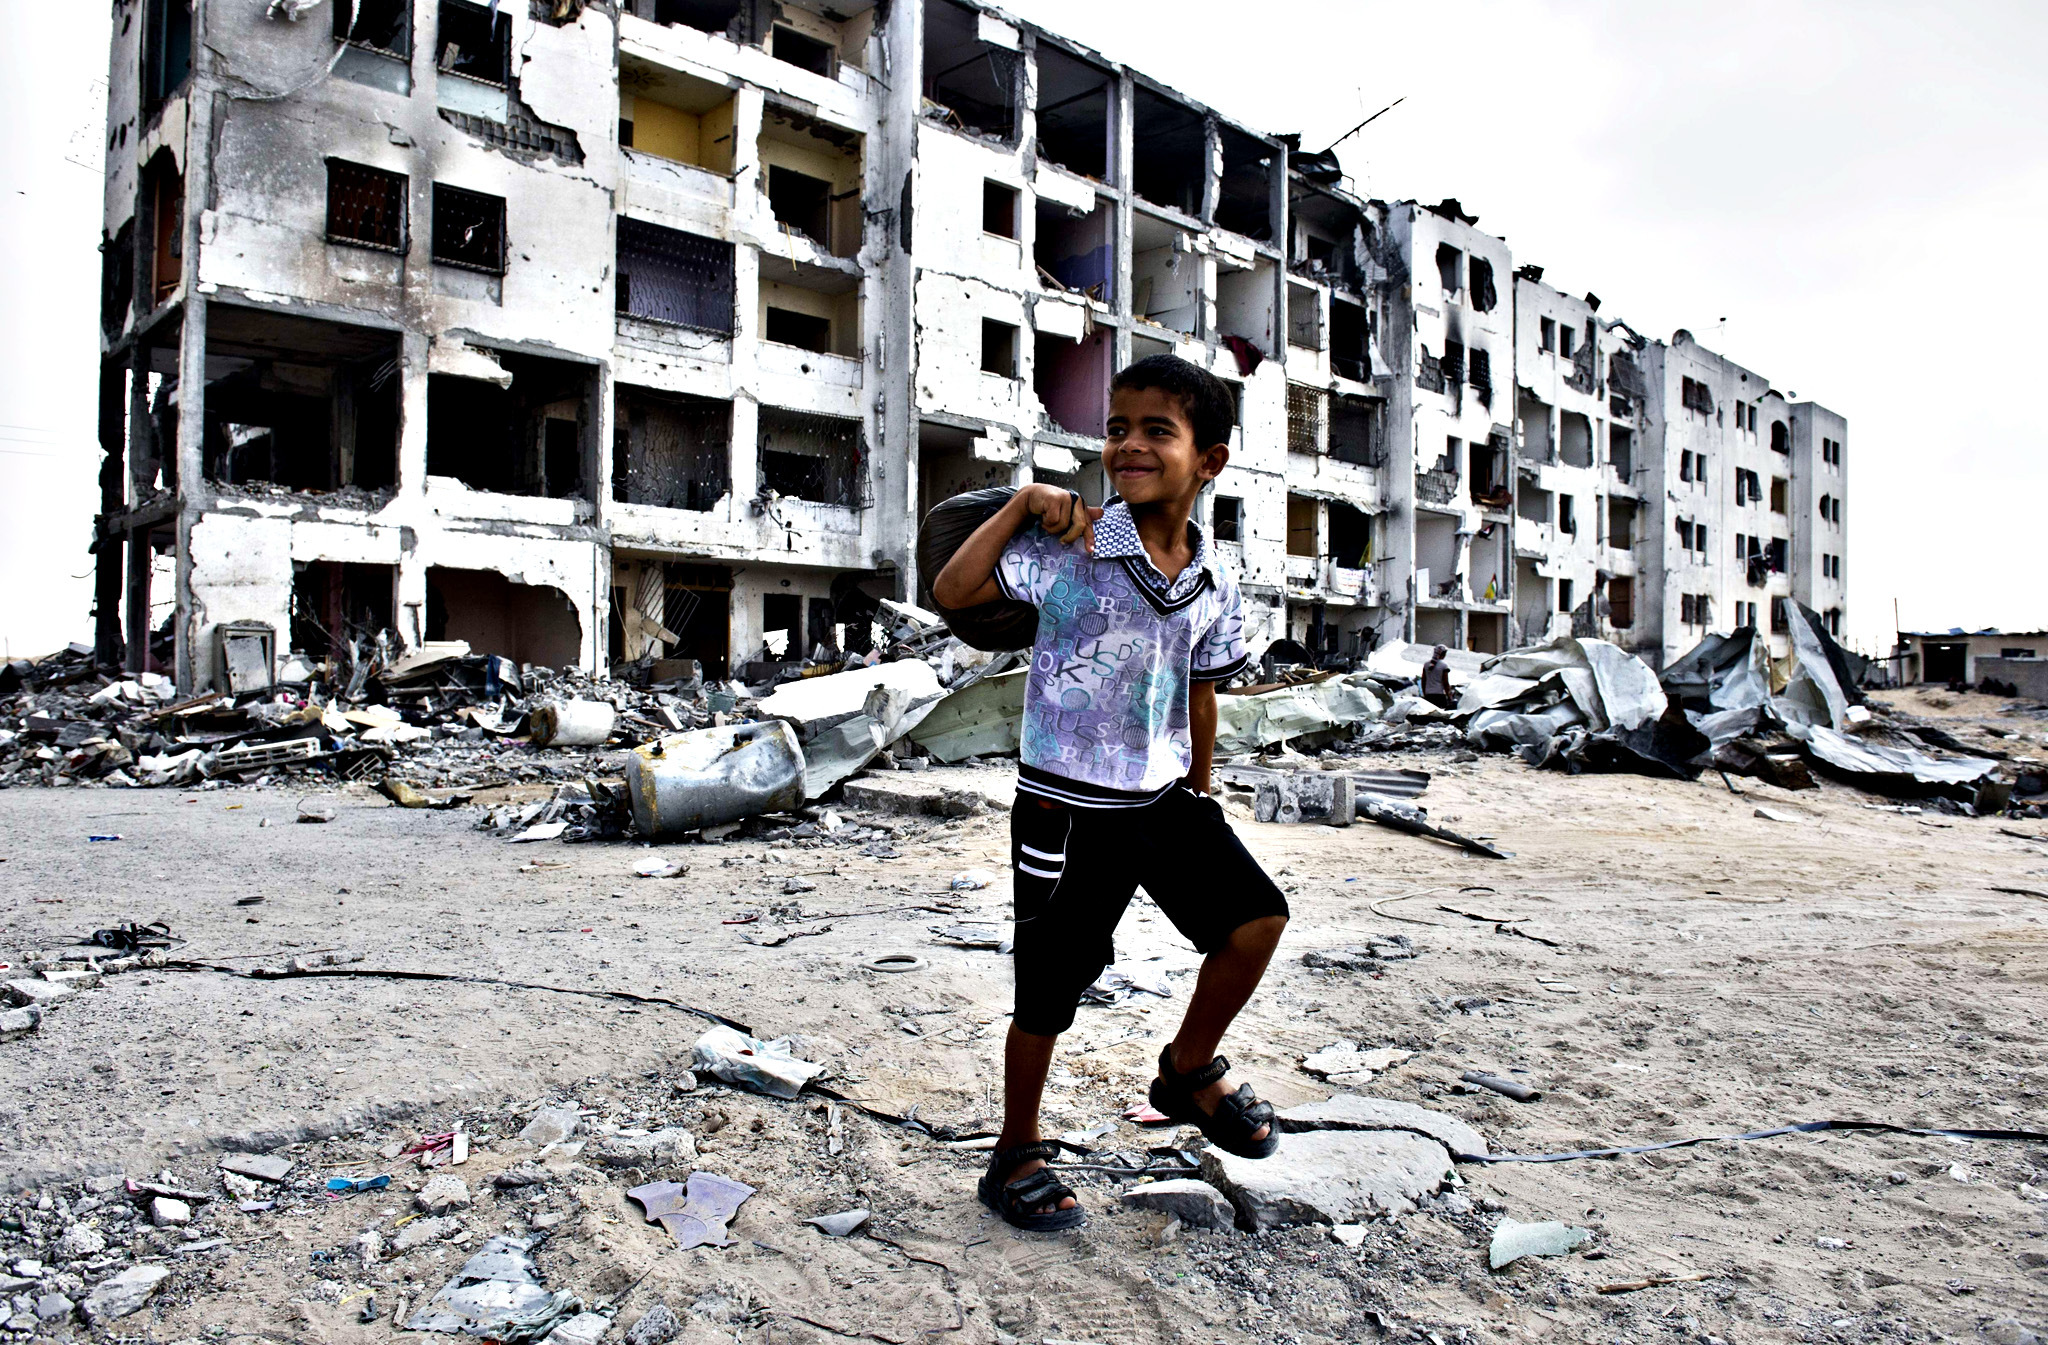 Palestinian boy Yussef, 8, smiles as he realises he is being photographed as he rounds a corner near shelled out apartment buildings while carrying bread to take back home to his father on August 14, 2014 in Beit Hanun, northern Gaza Strip. The other members of the family stay overnight at a UN school. Israel and Gaza militants were holding their fire today after a new truce got off to a shaky start, with night-time Palestinian rocket fire followed by Israeli air strikes.